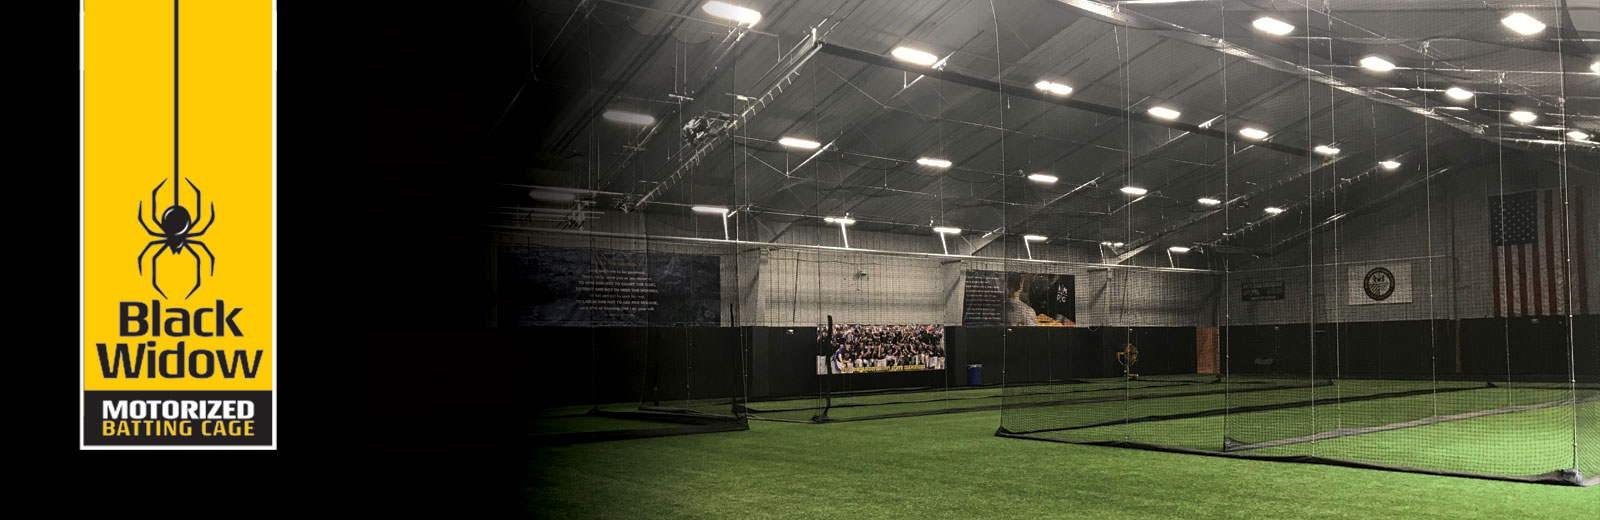 Black Widow Motorized Batting Cages